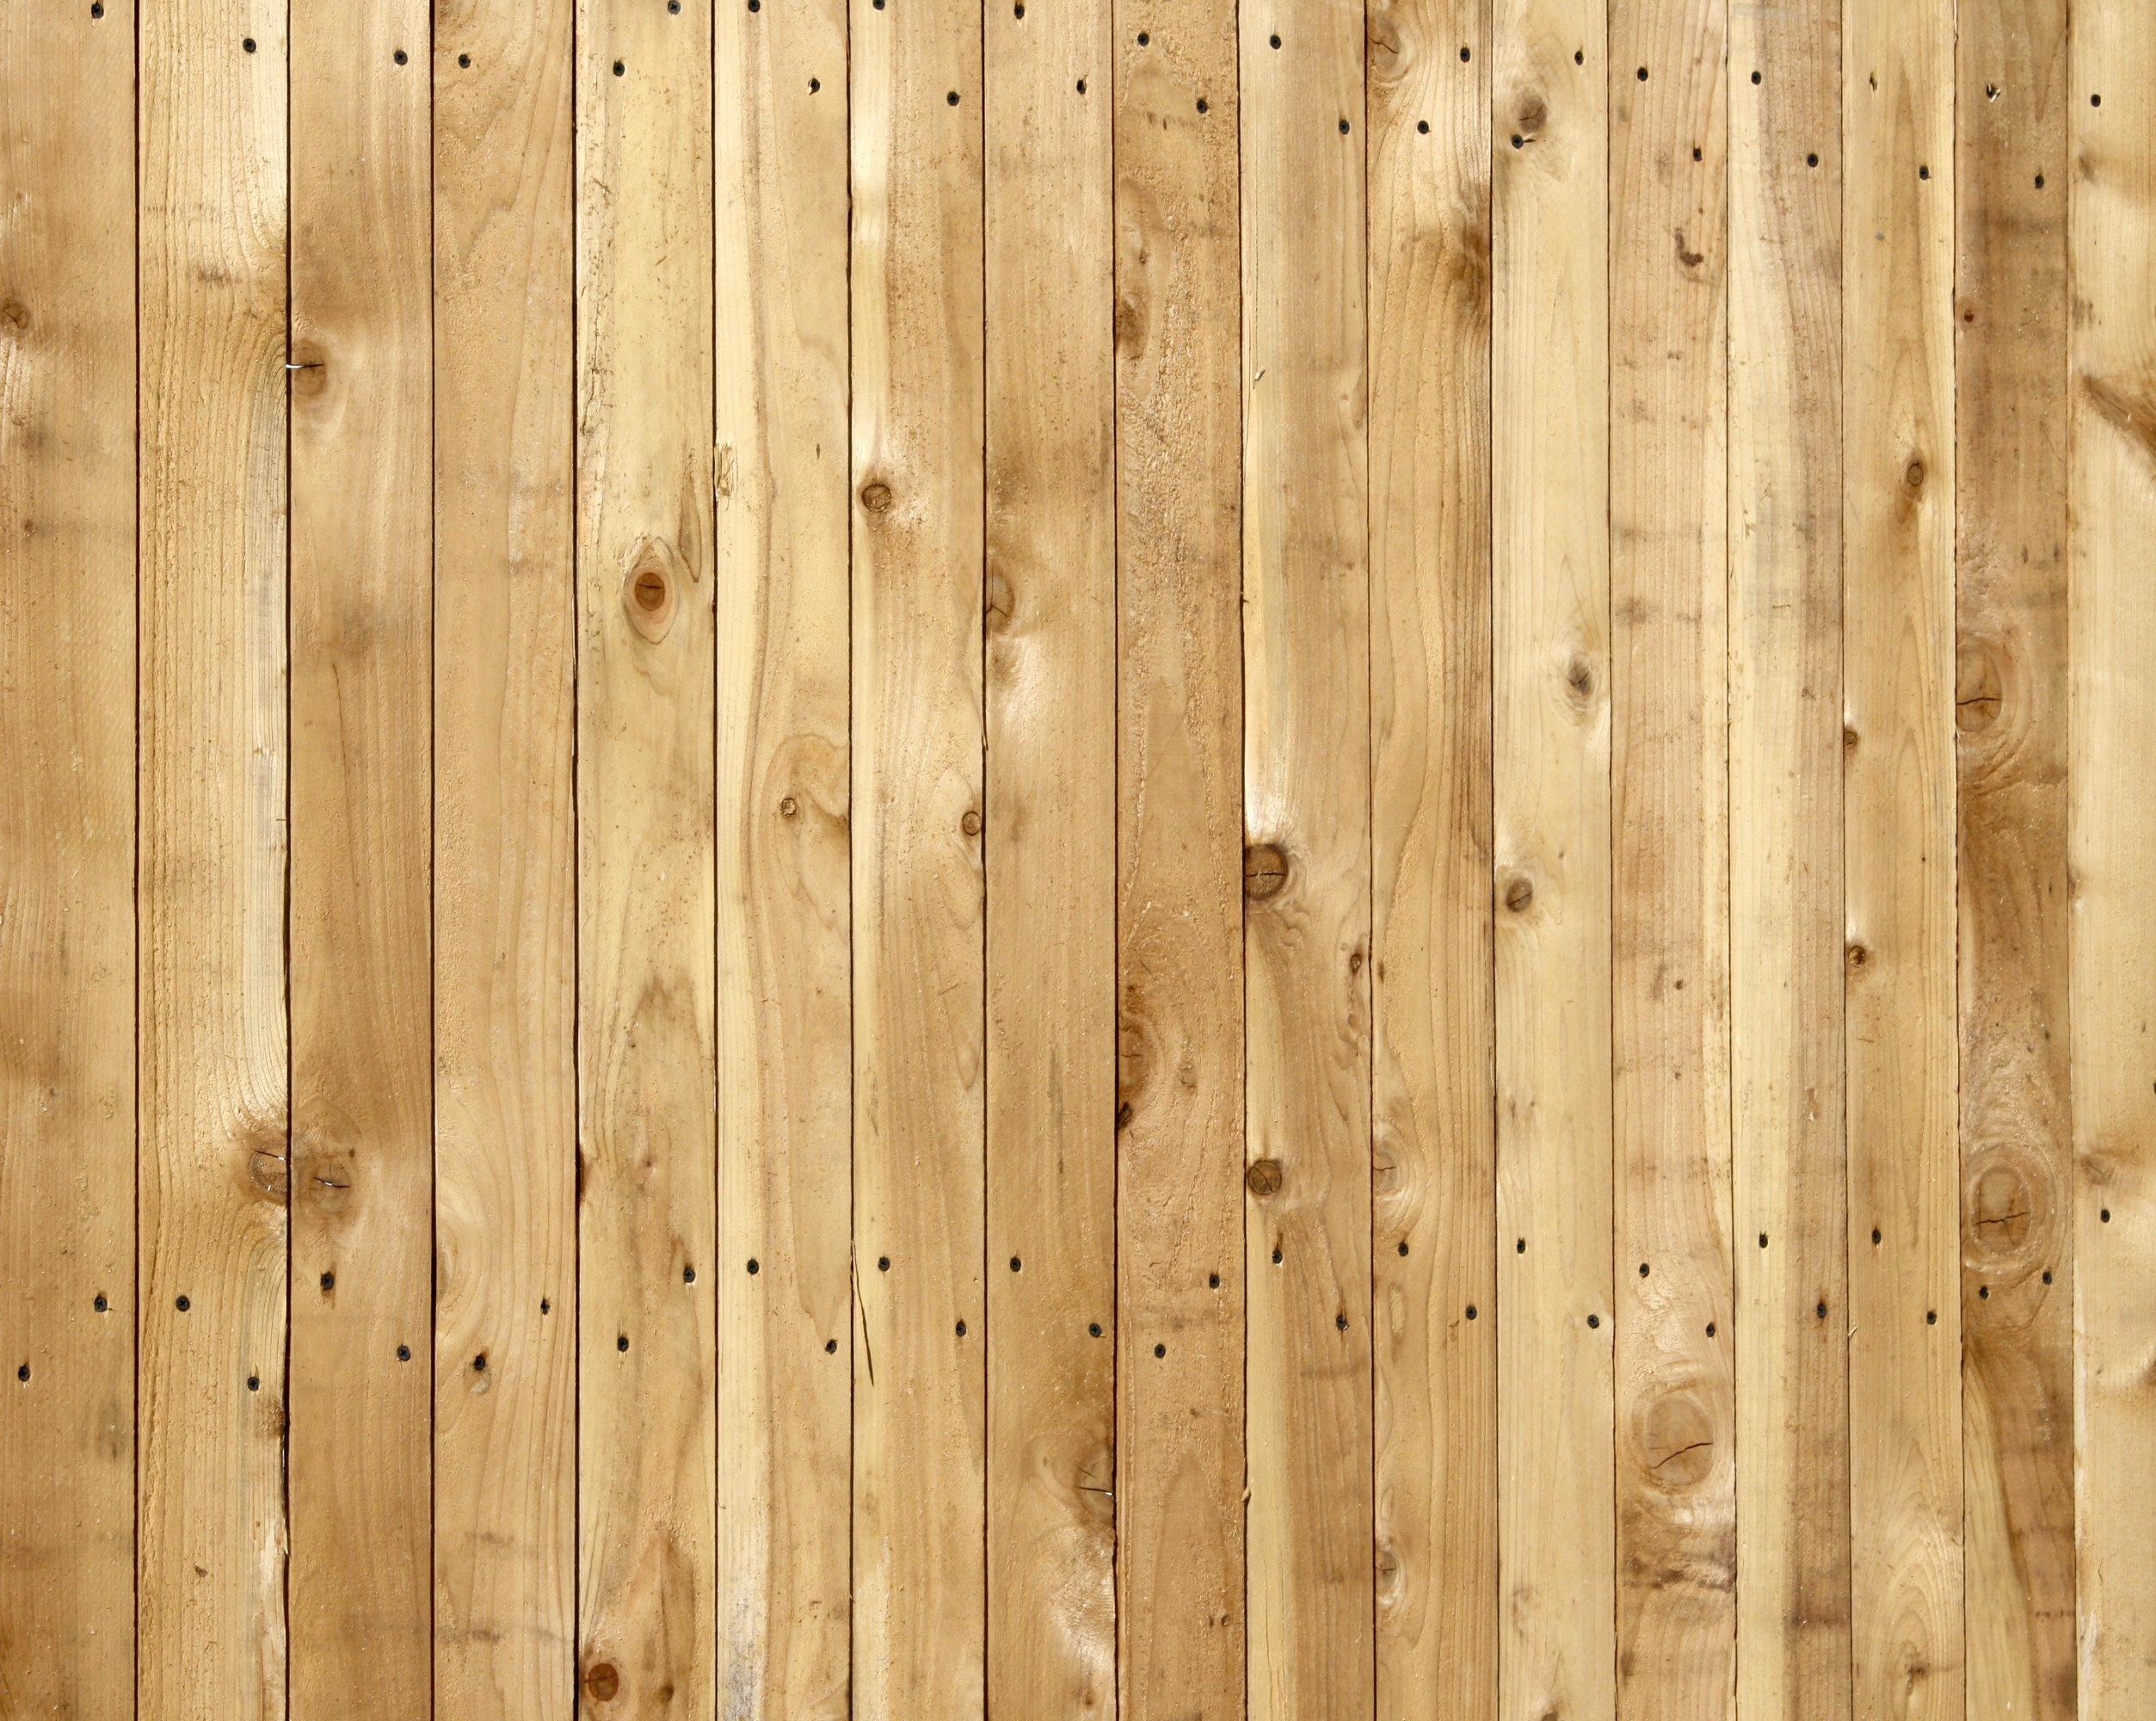 wood fence texture. Unique Fence 2000 With Wood Fence Texture V